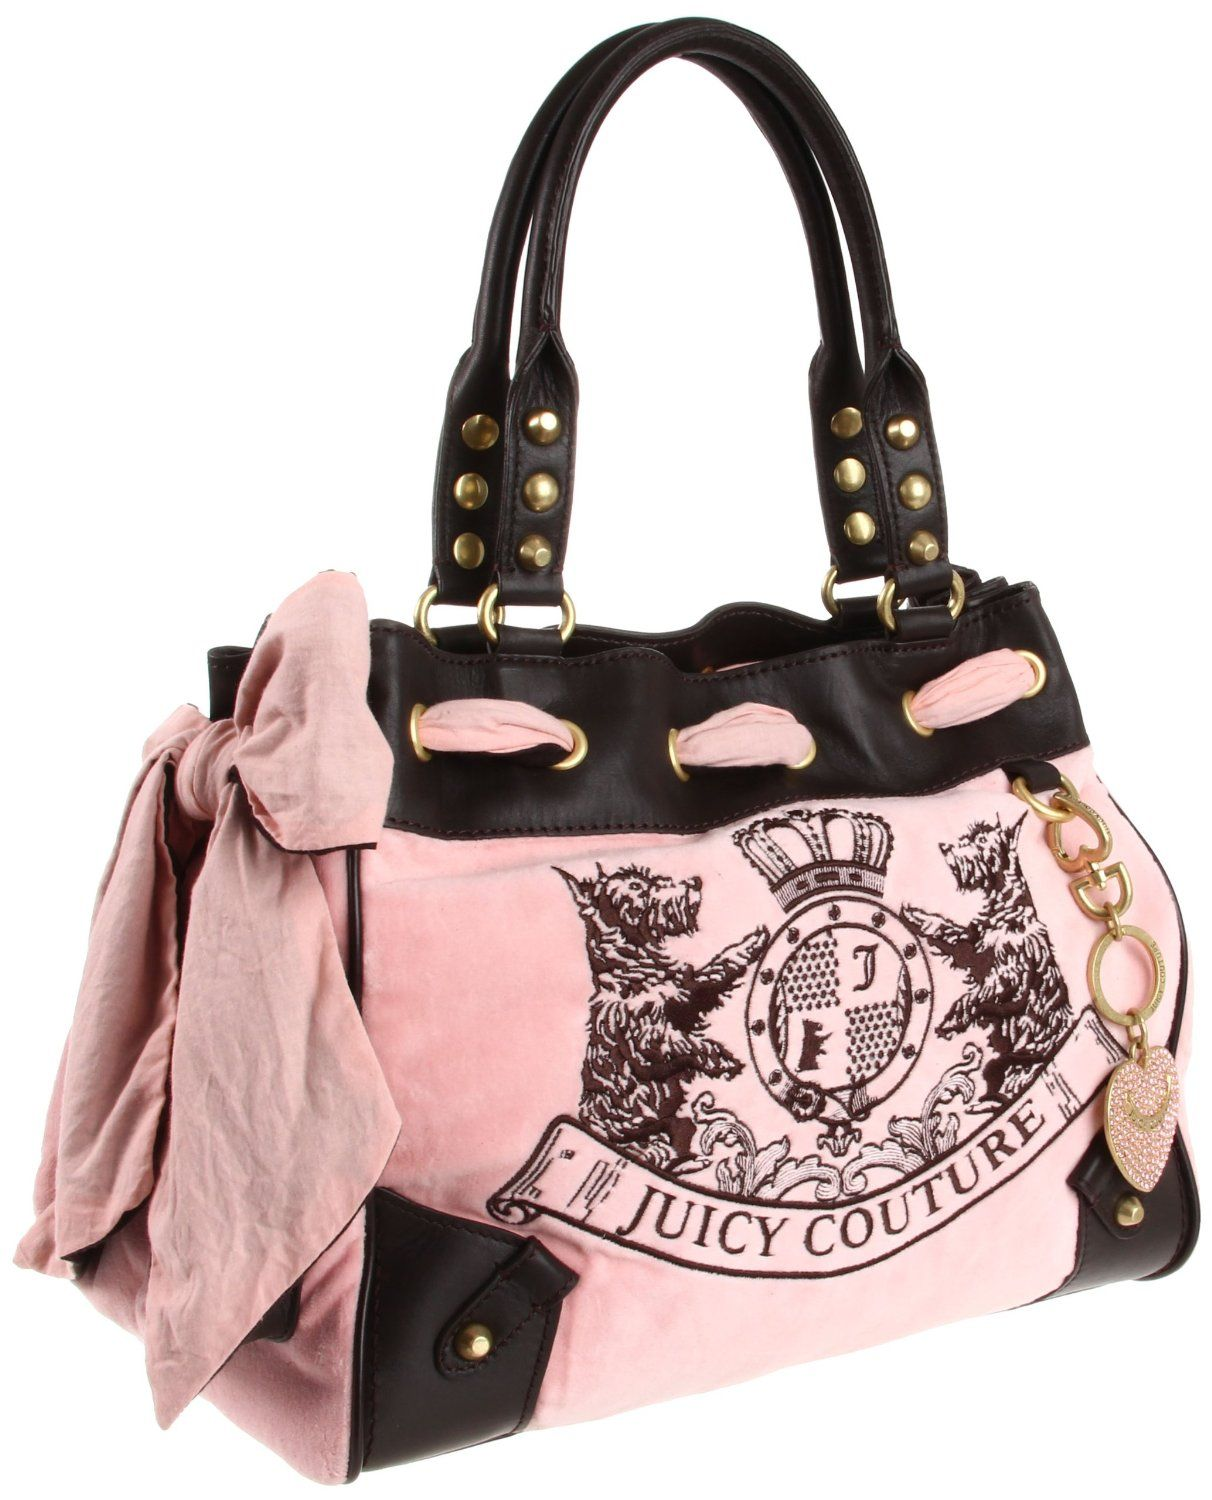 84ecaa6481 Juicy Couture Scottie Embroidery Daydreamer Tote Bag